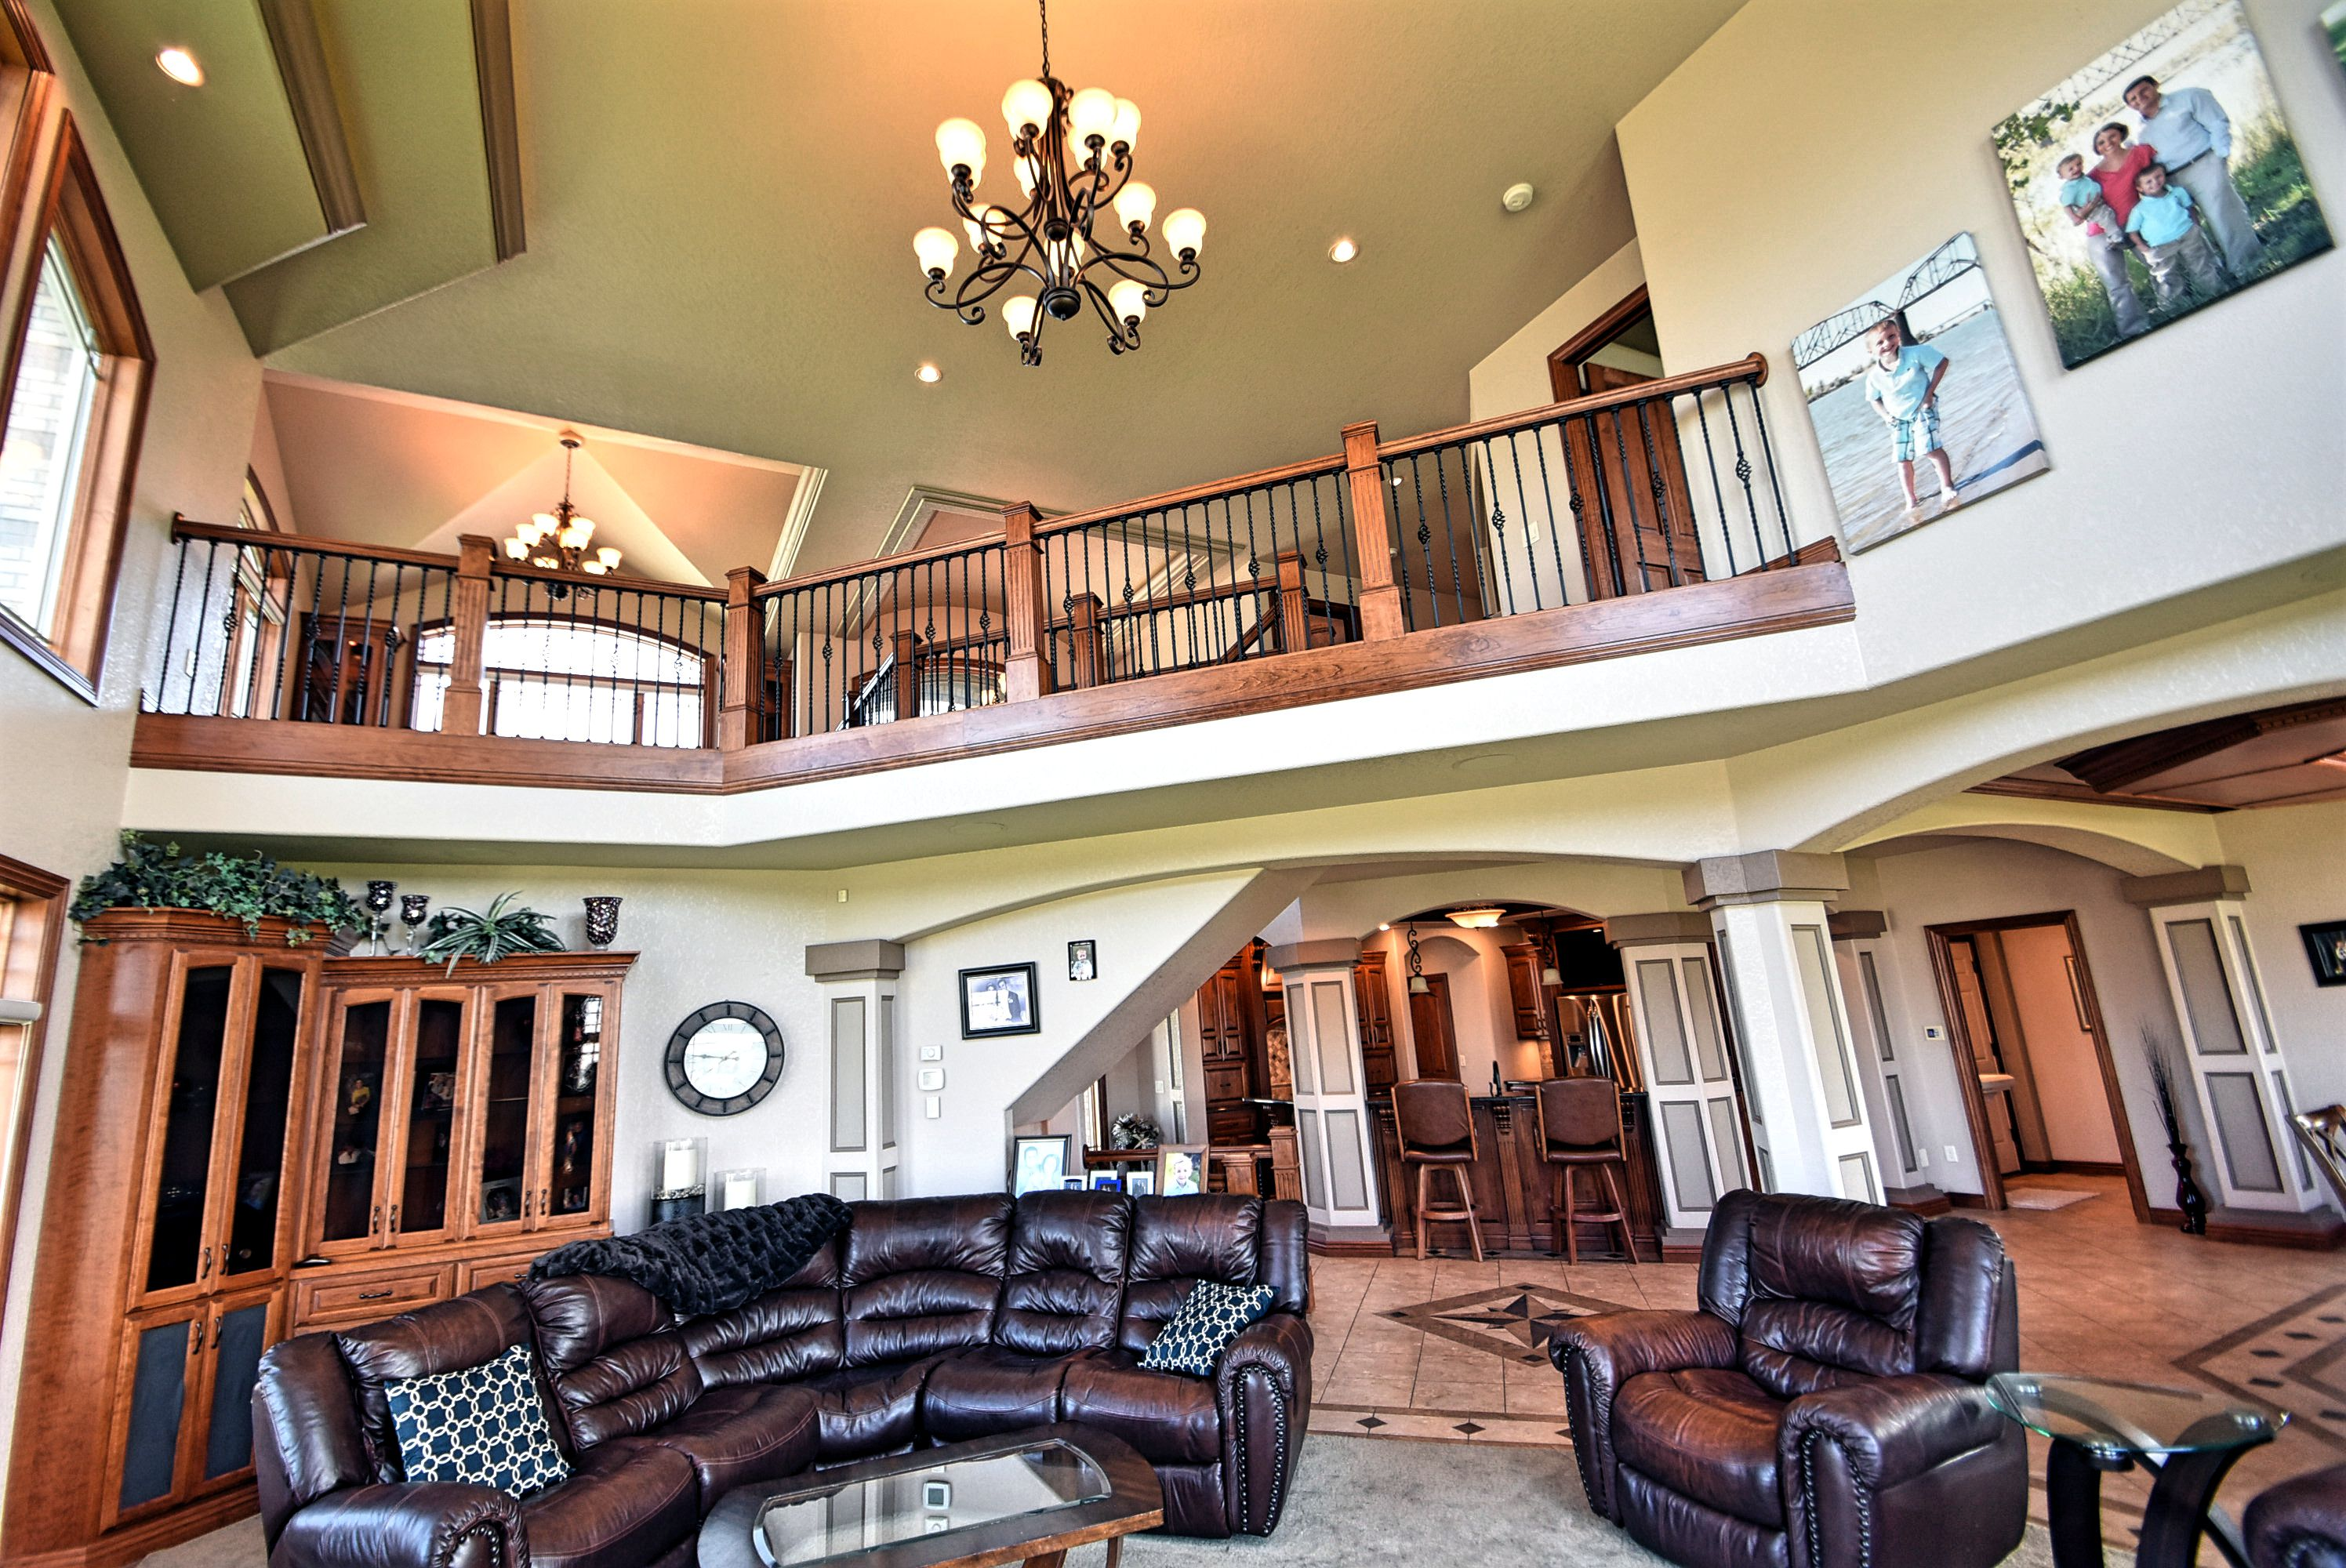 Open railing above family room.